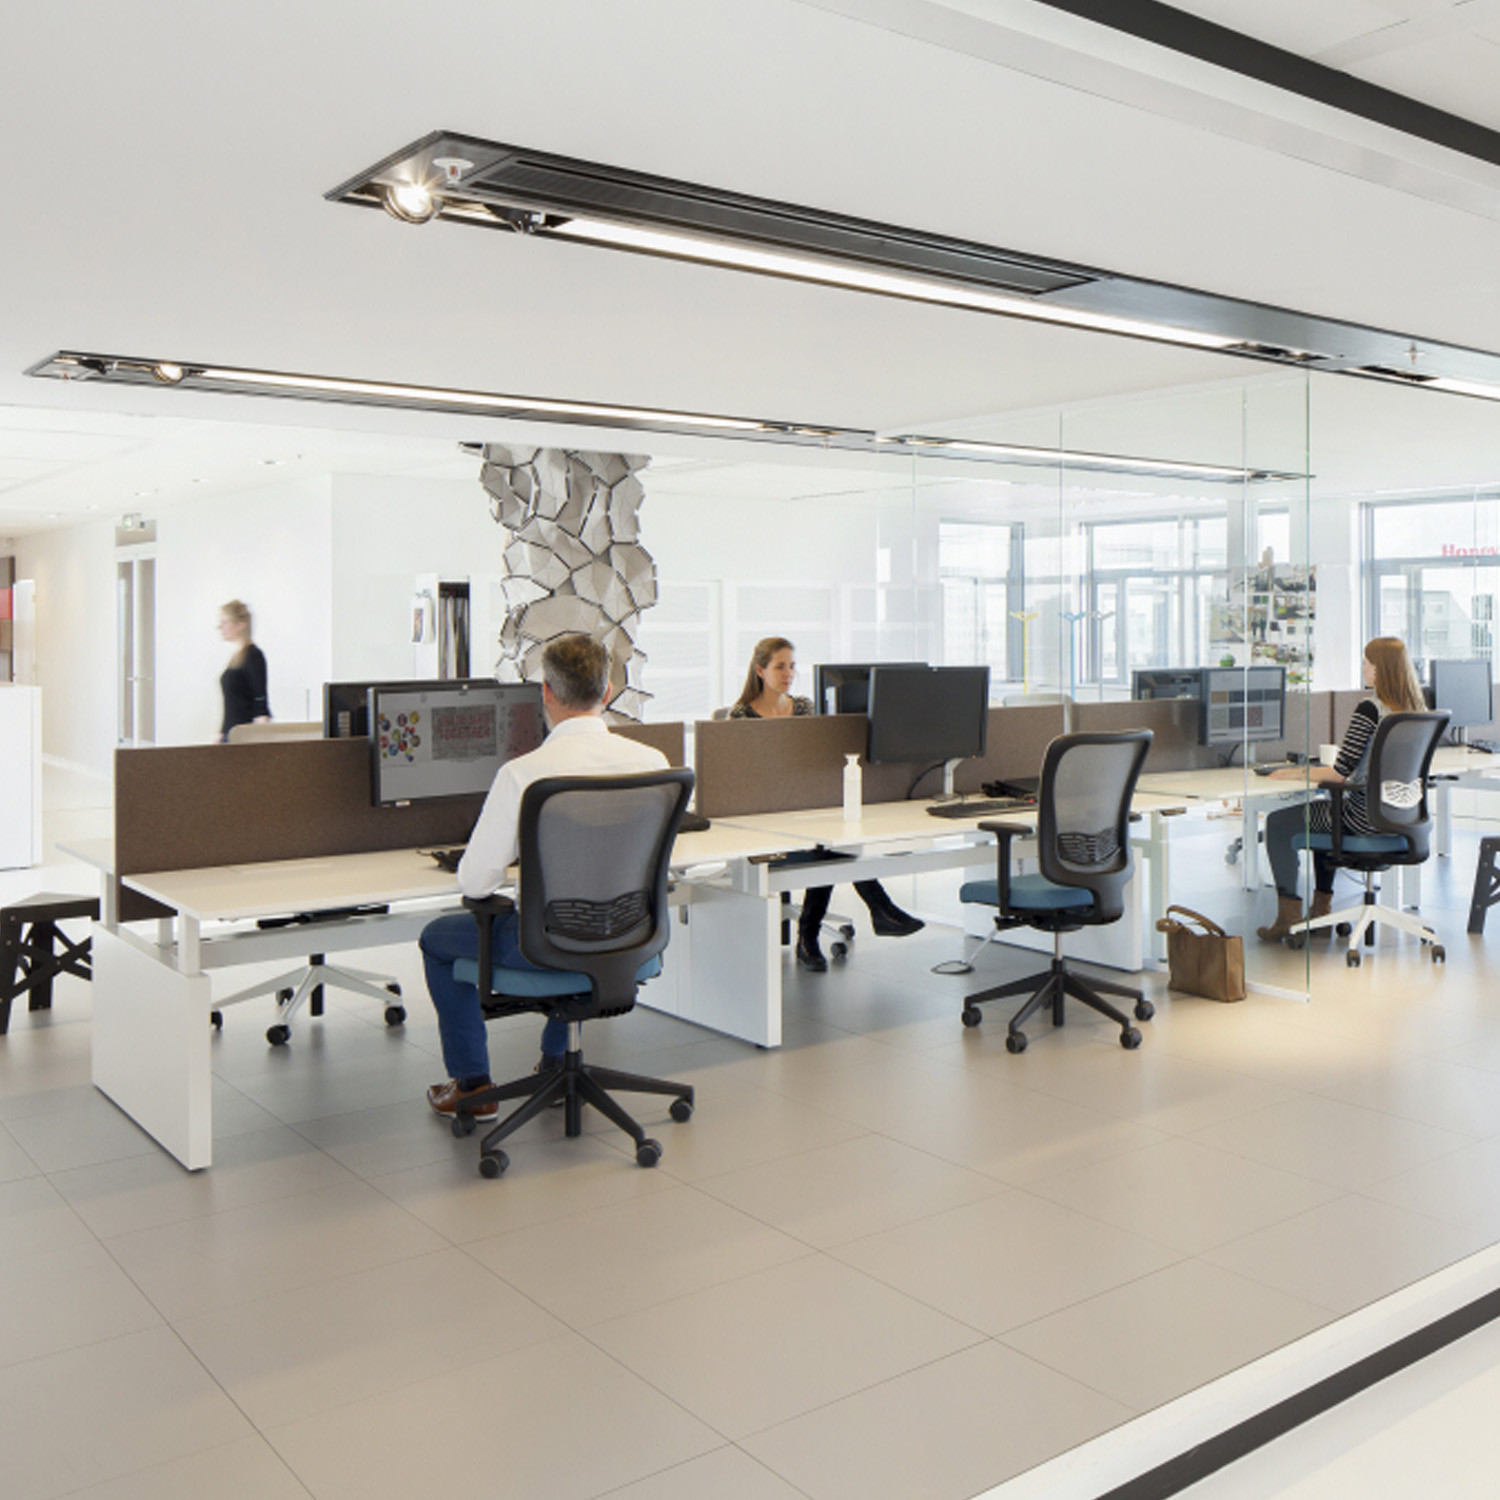 Ahrend balance desks balance adjustable height desks apres for Office design guidelines